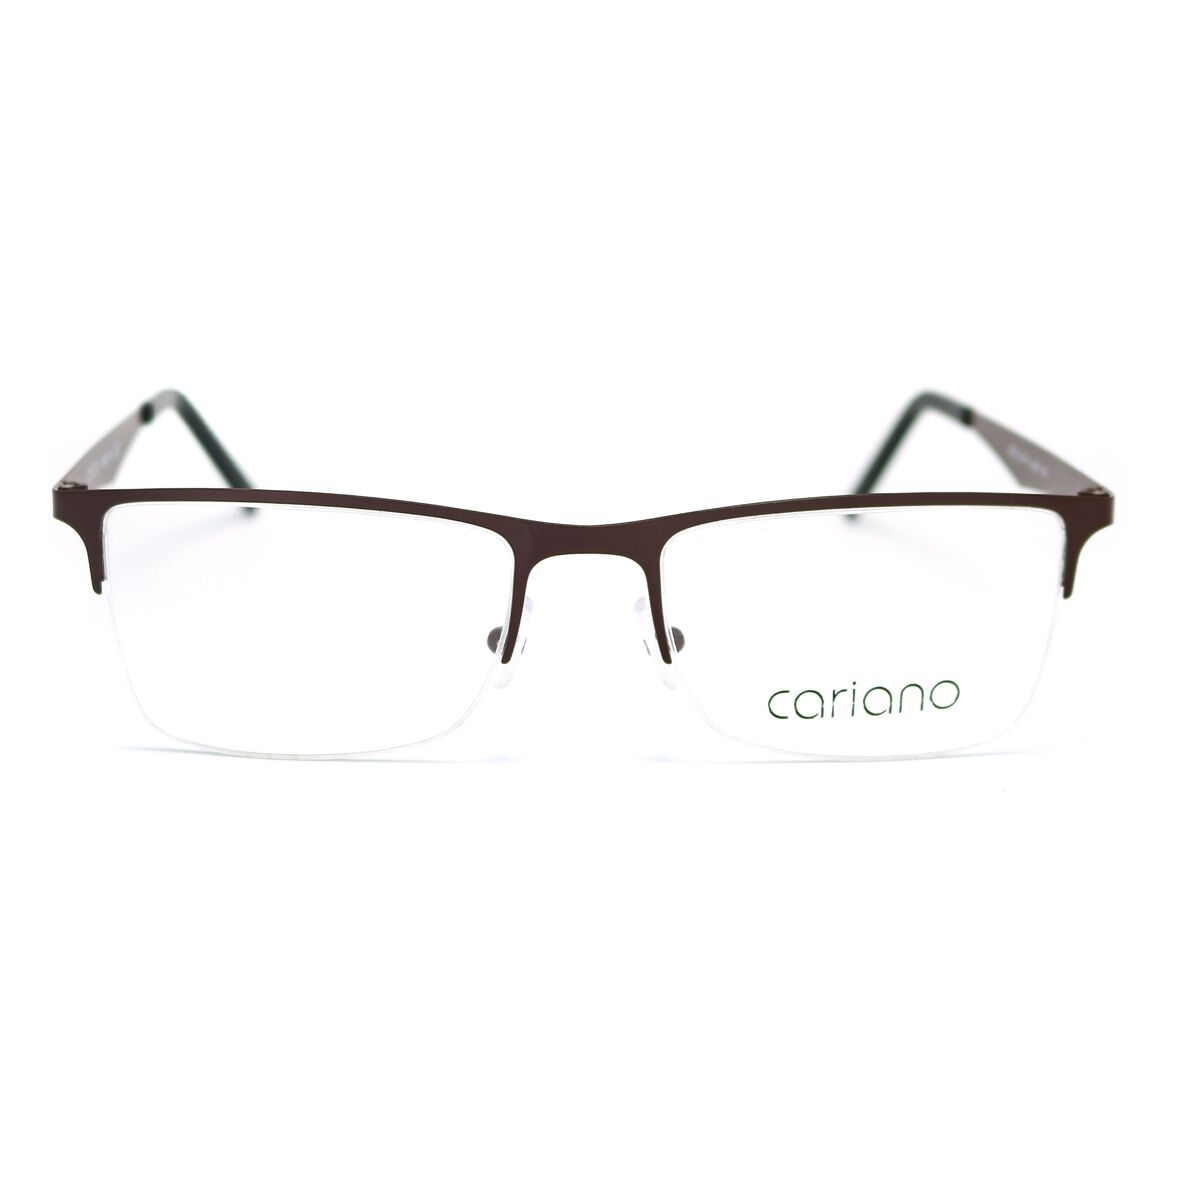 Cariano - 5000 B size - 54